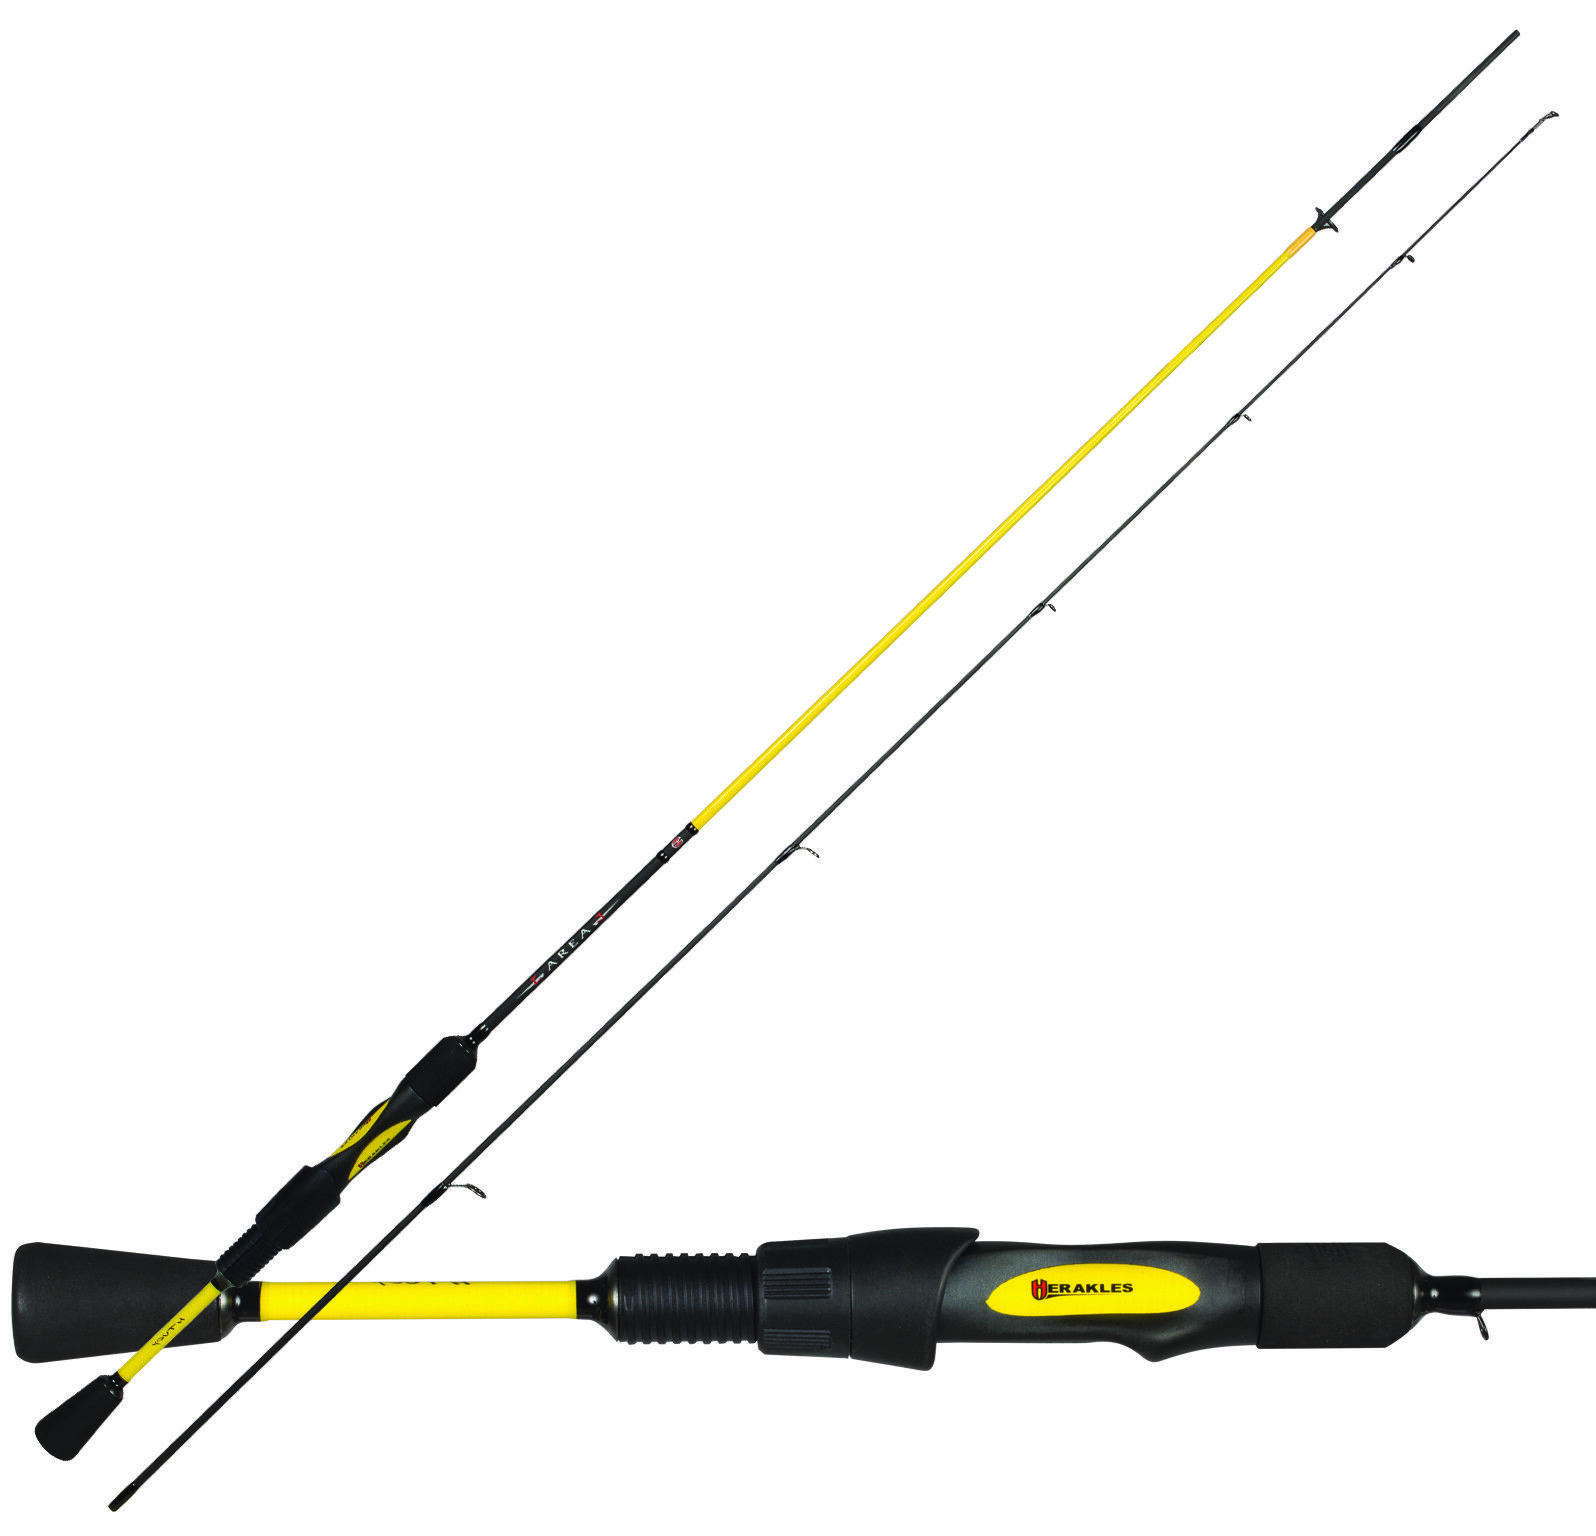 Herakles canna pesca area spinning Youth J carbonio alto modulo japan RNG